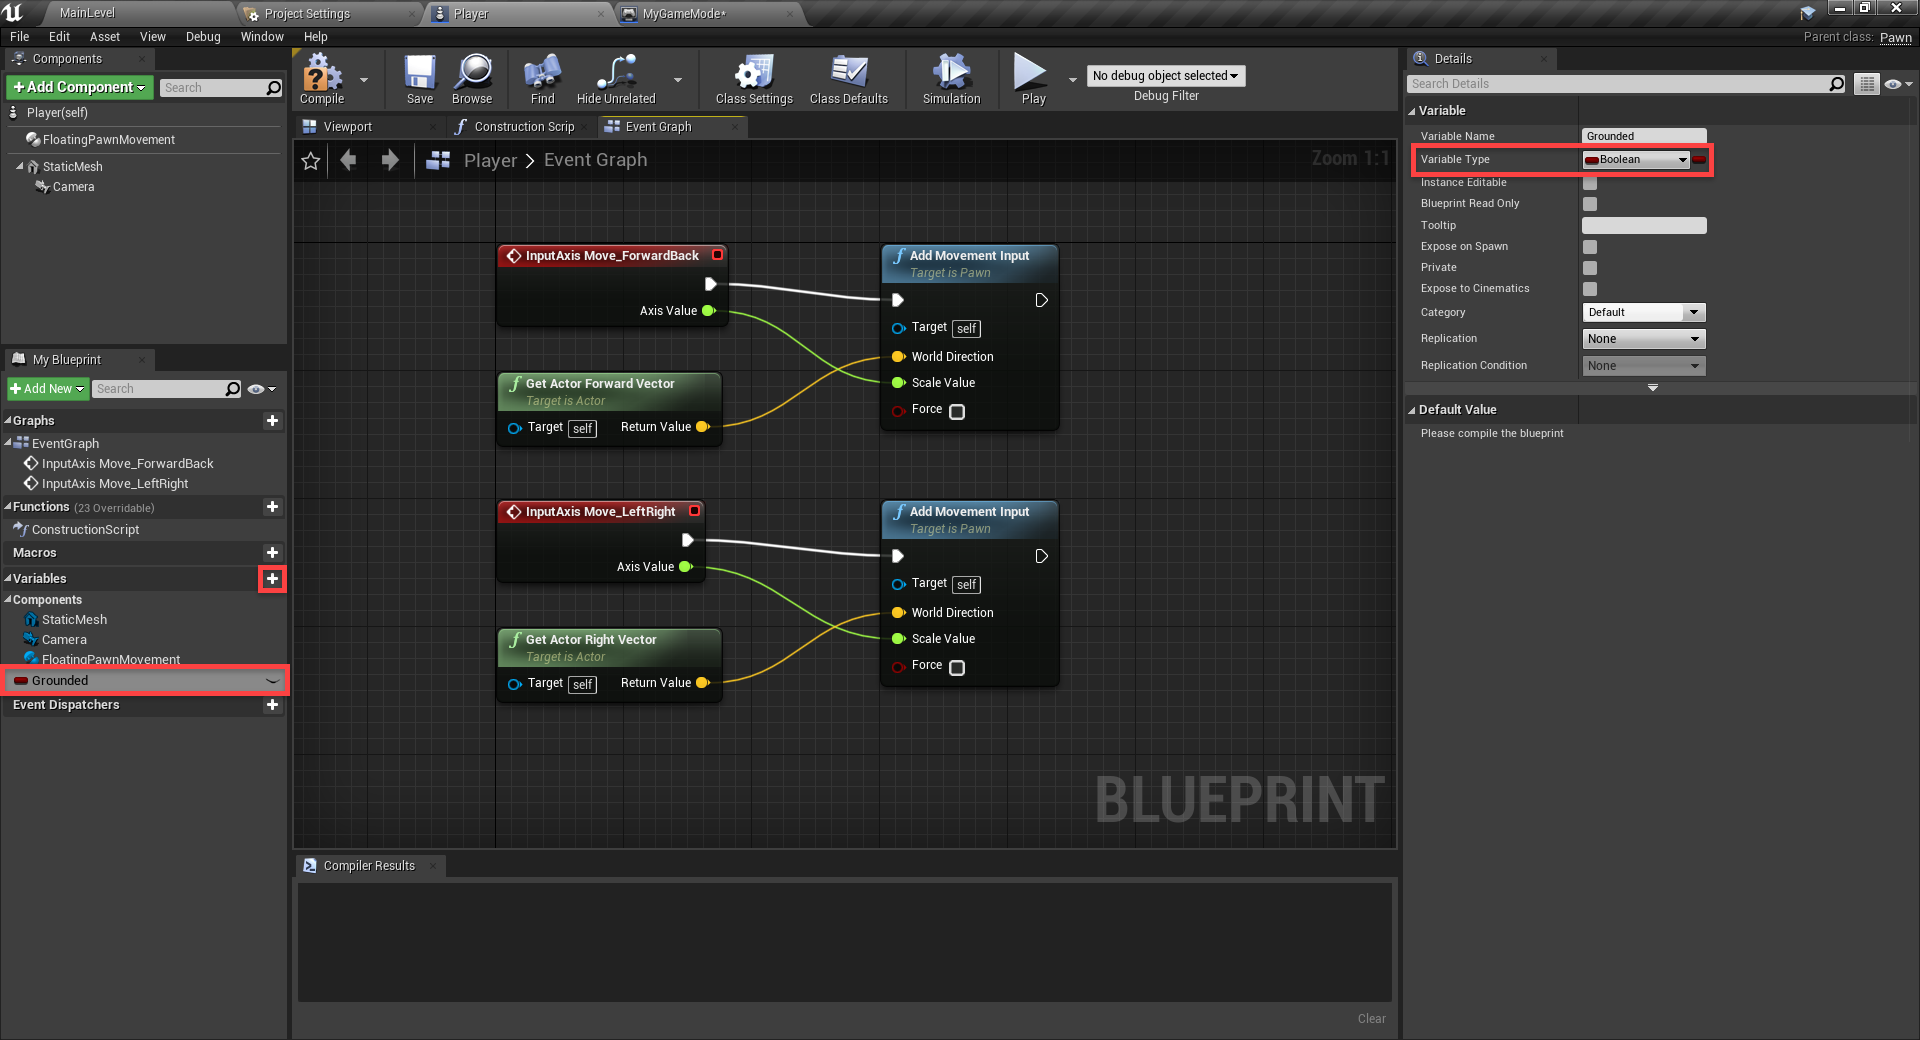 Unreal Engine with Variable Type chosen